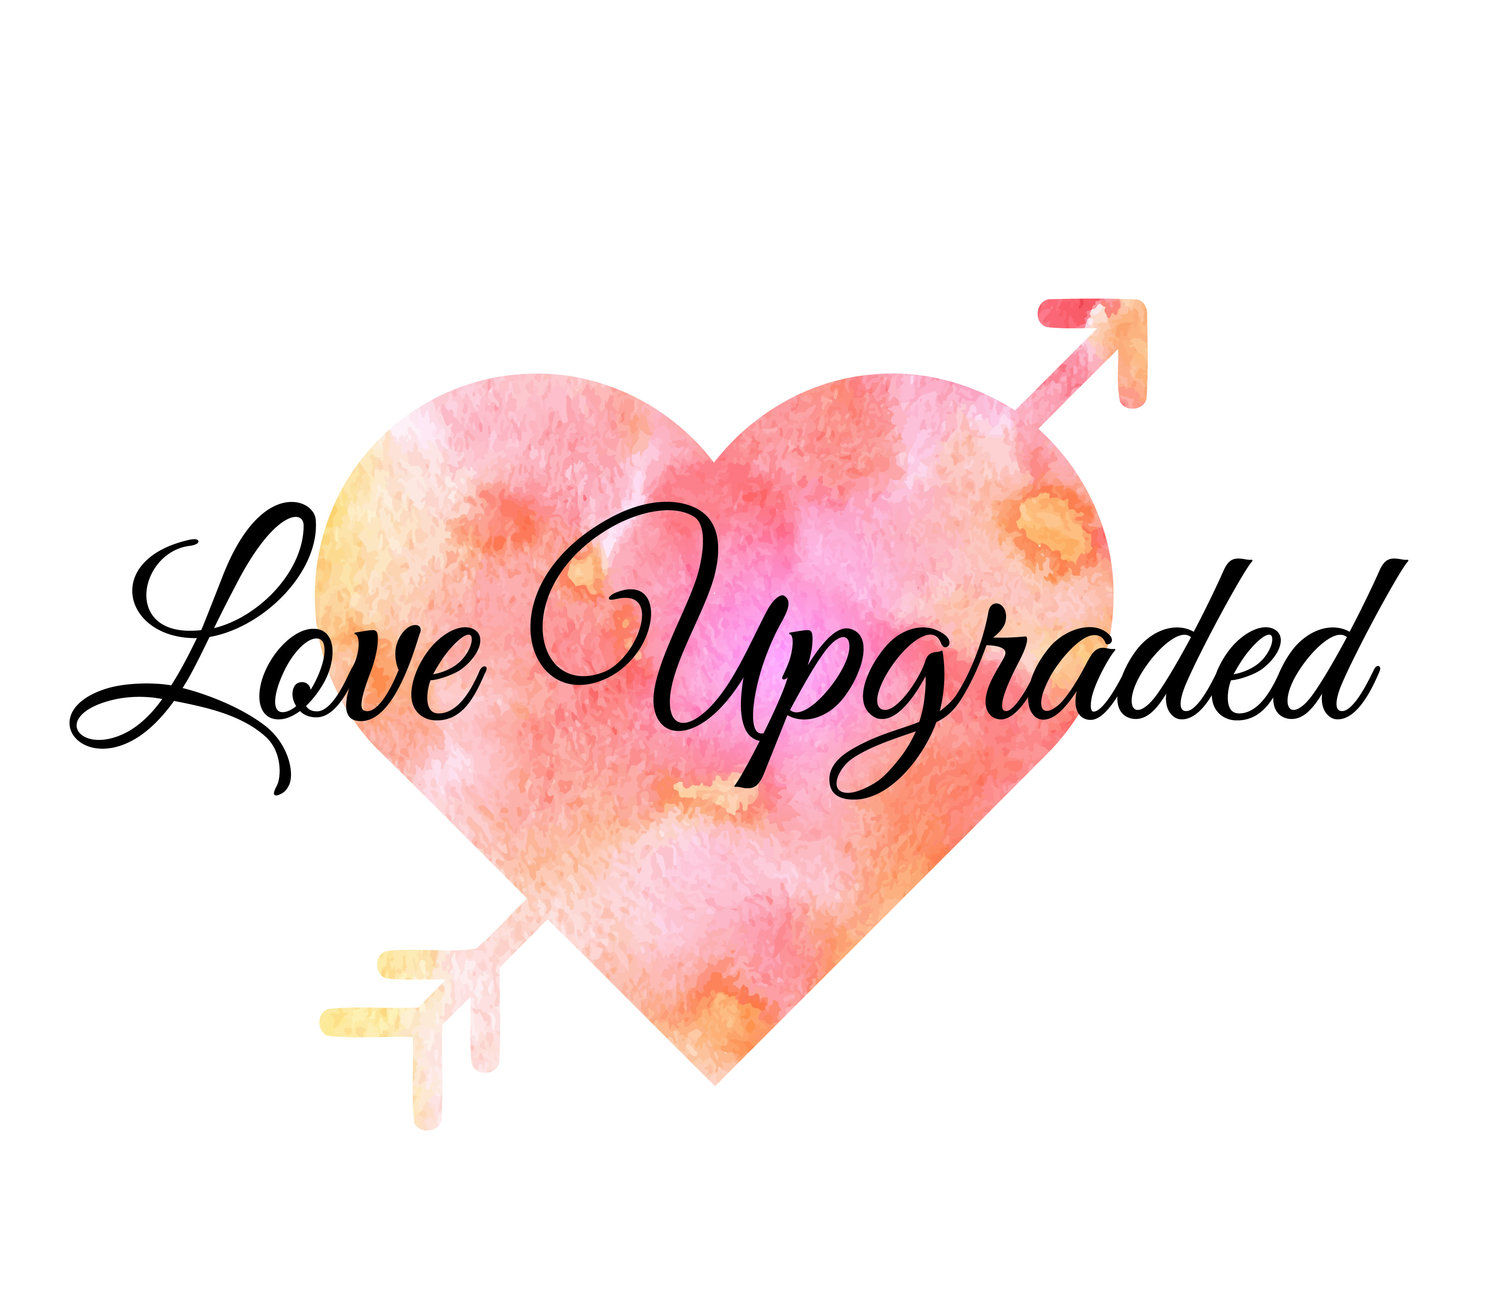 Love Upgraded